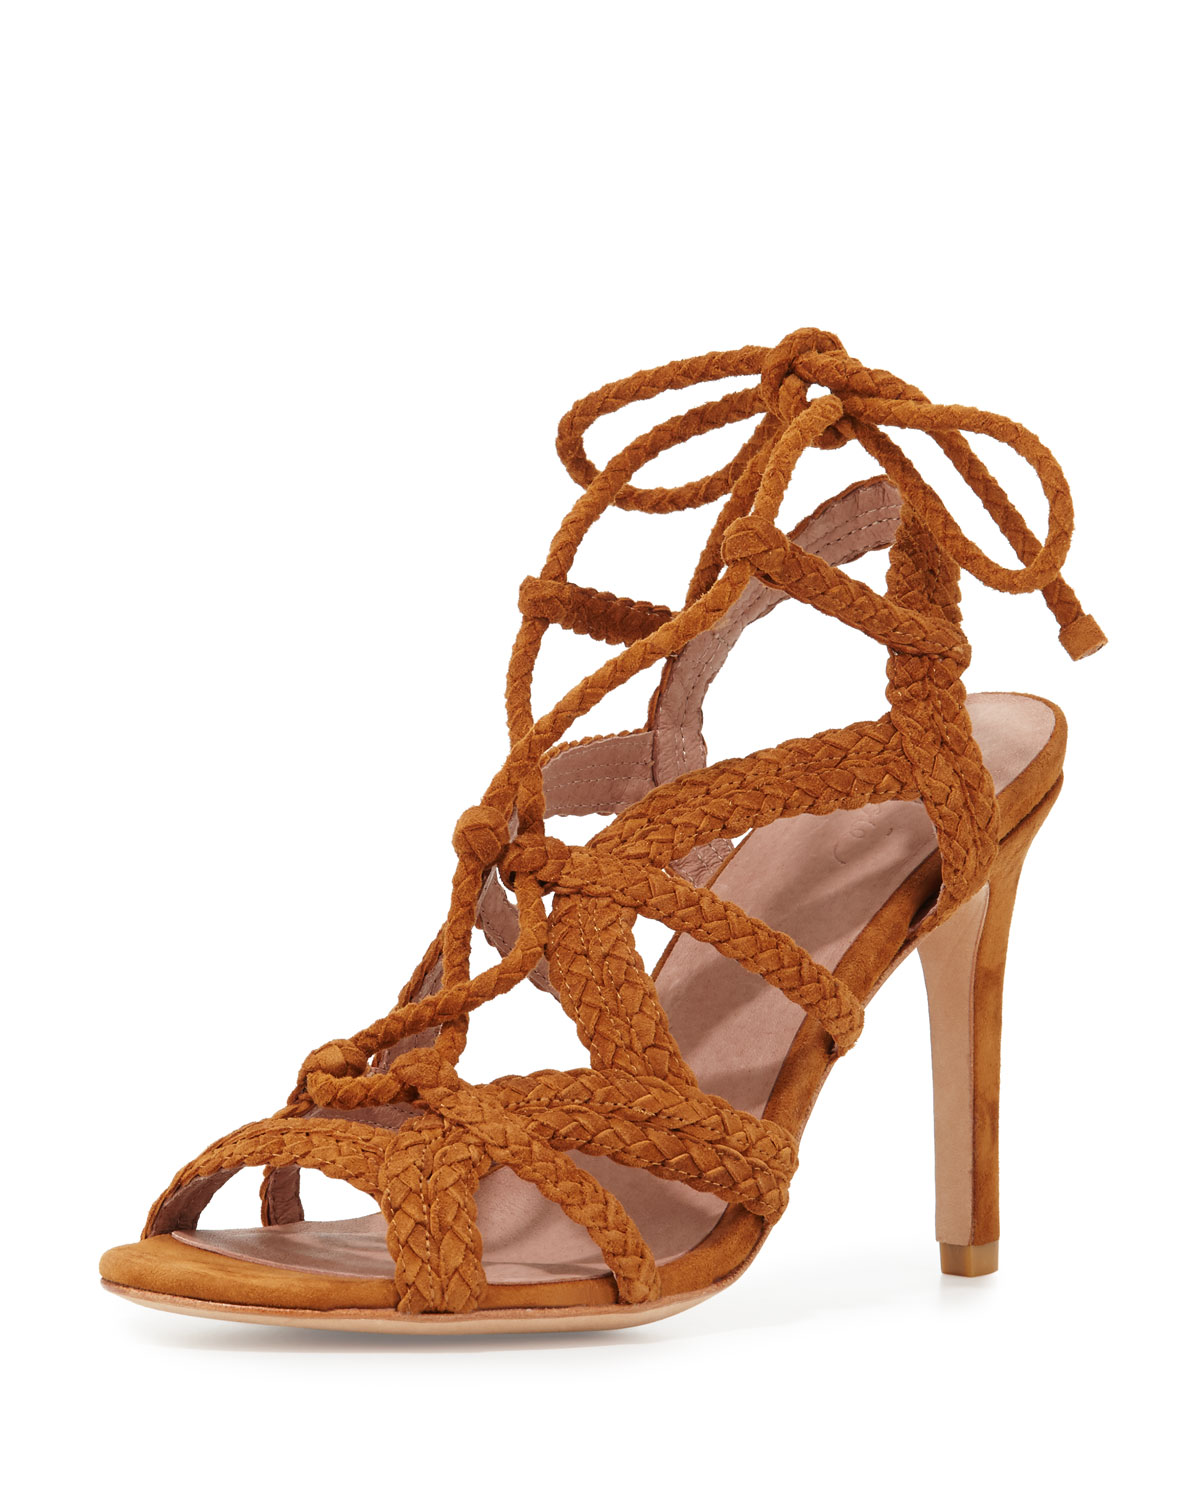 Tonni Suede Strappy Sandal, Whiskey, Size: 35.0B/5.0B - Joie